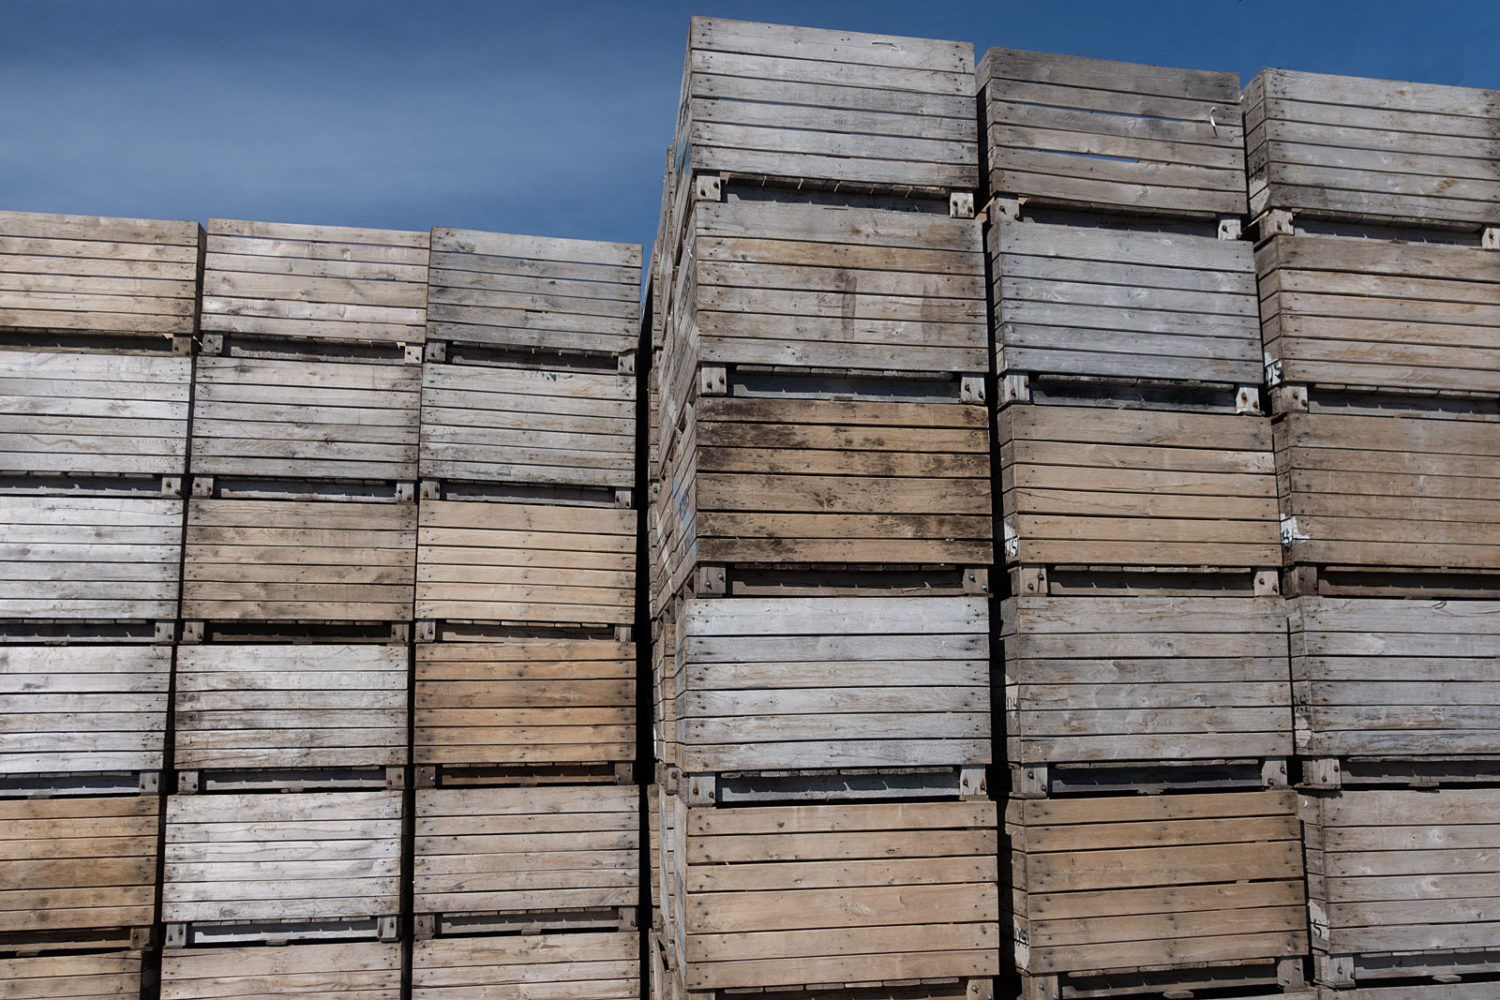 Apple crates near Pultneyville, New York